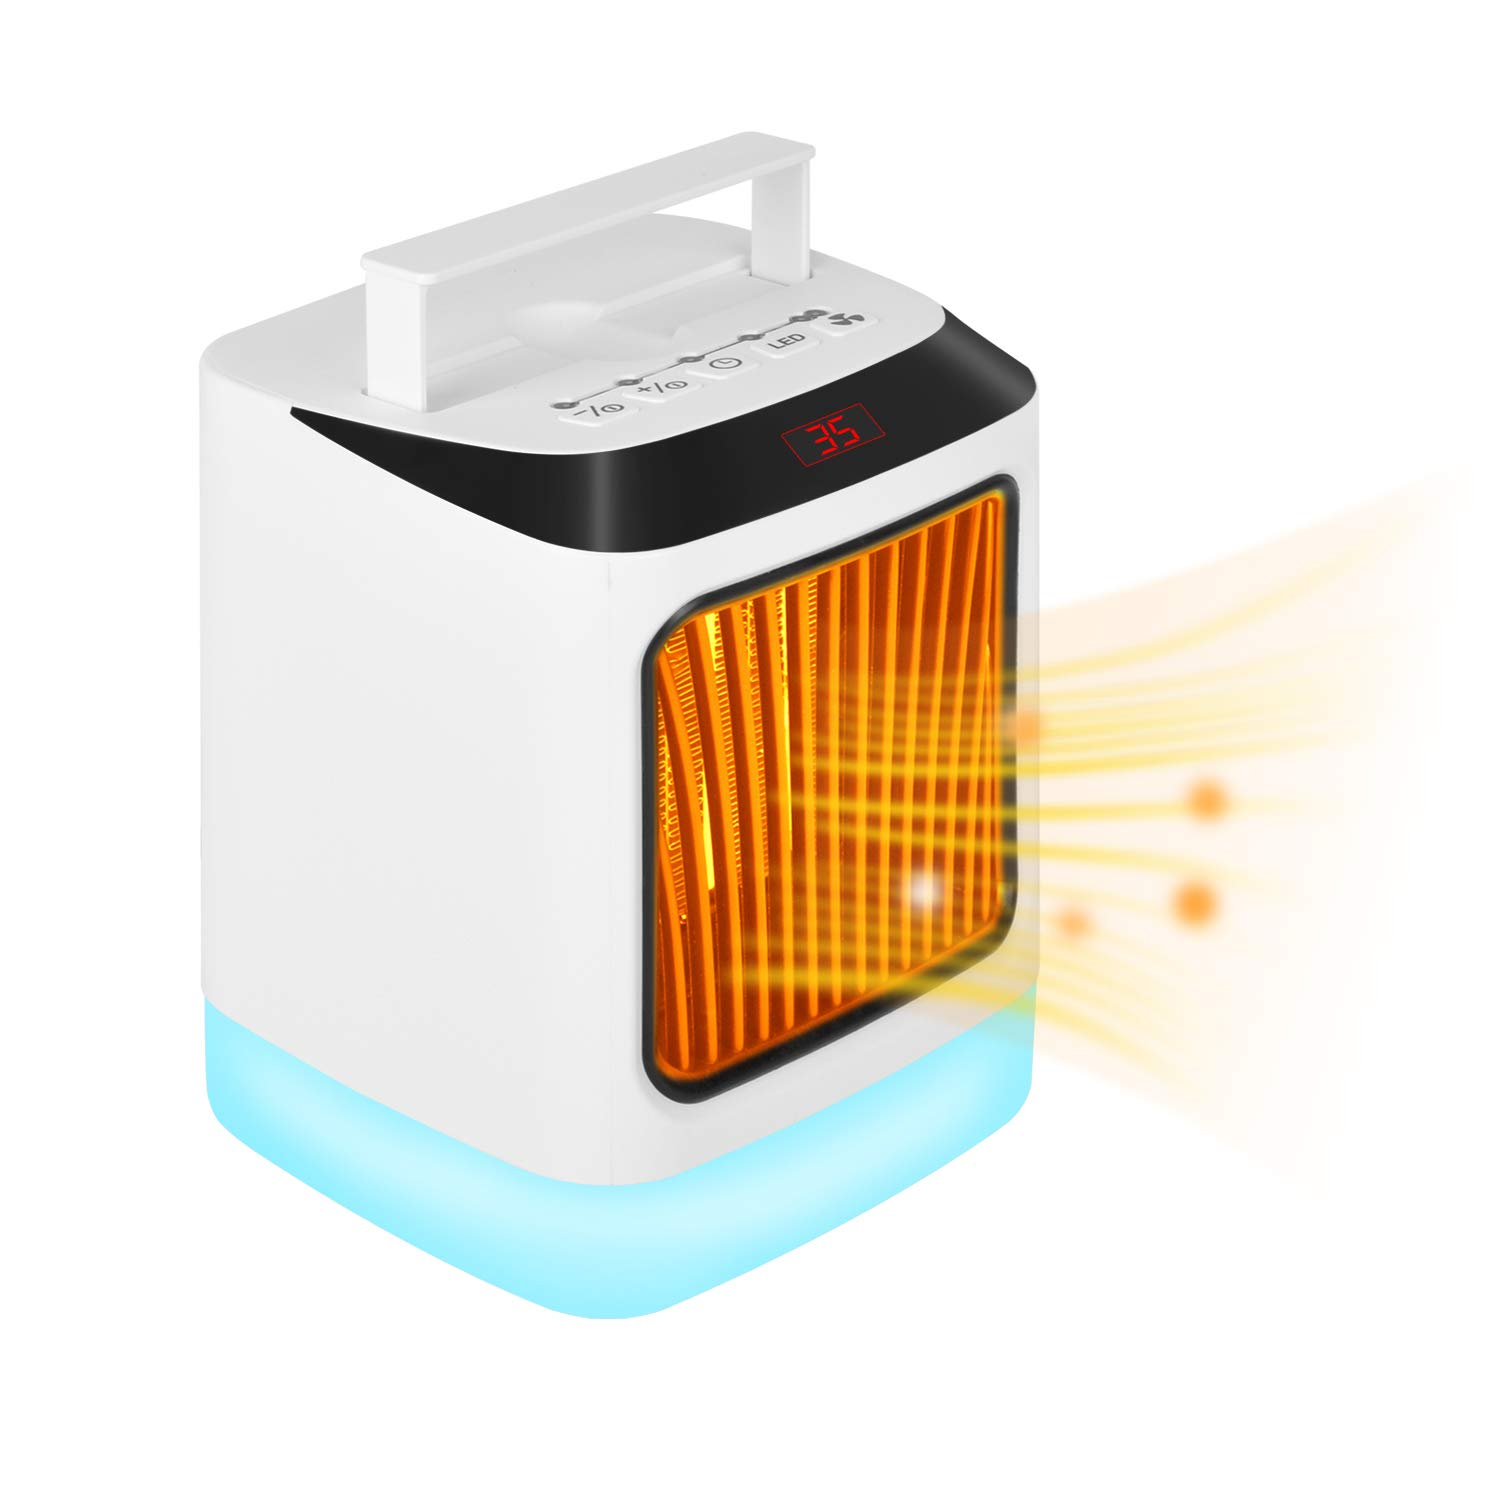 NovoLido Portable Space Heater for All Year Round Humidifier Included , 1000W 800W Desktop Electric Space Heater with 7 Colors Light, 3 Time Settings, Adjustable Thermostat, Safe Protection, White